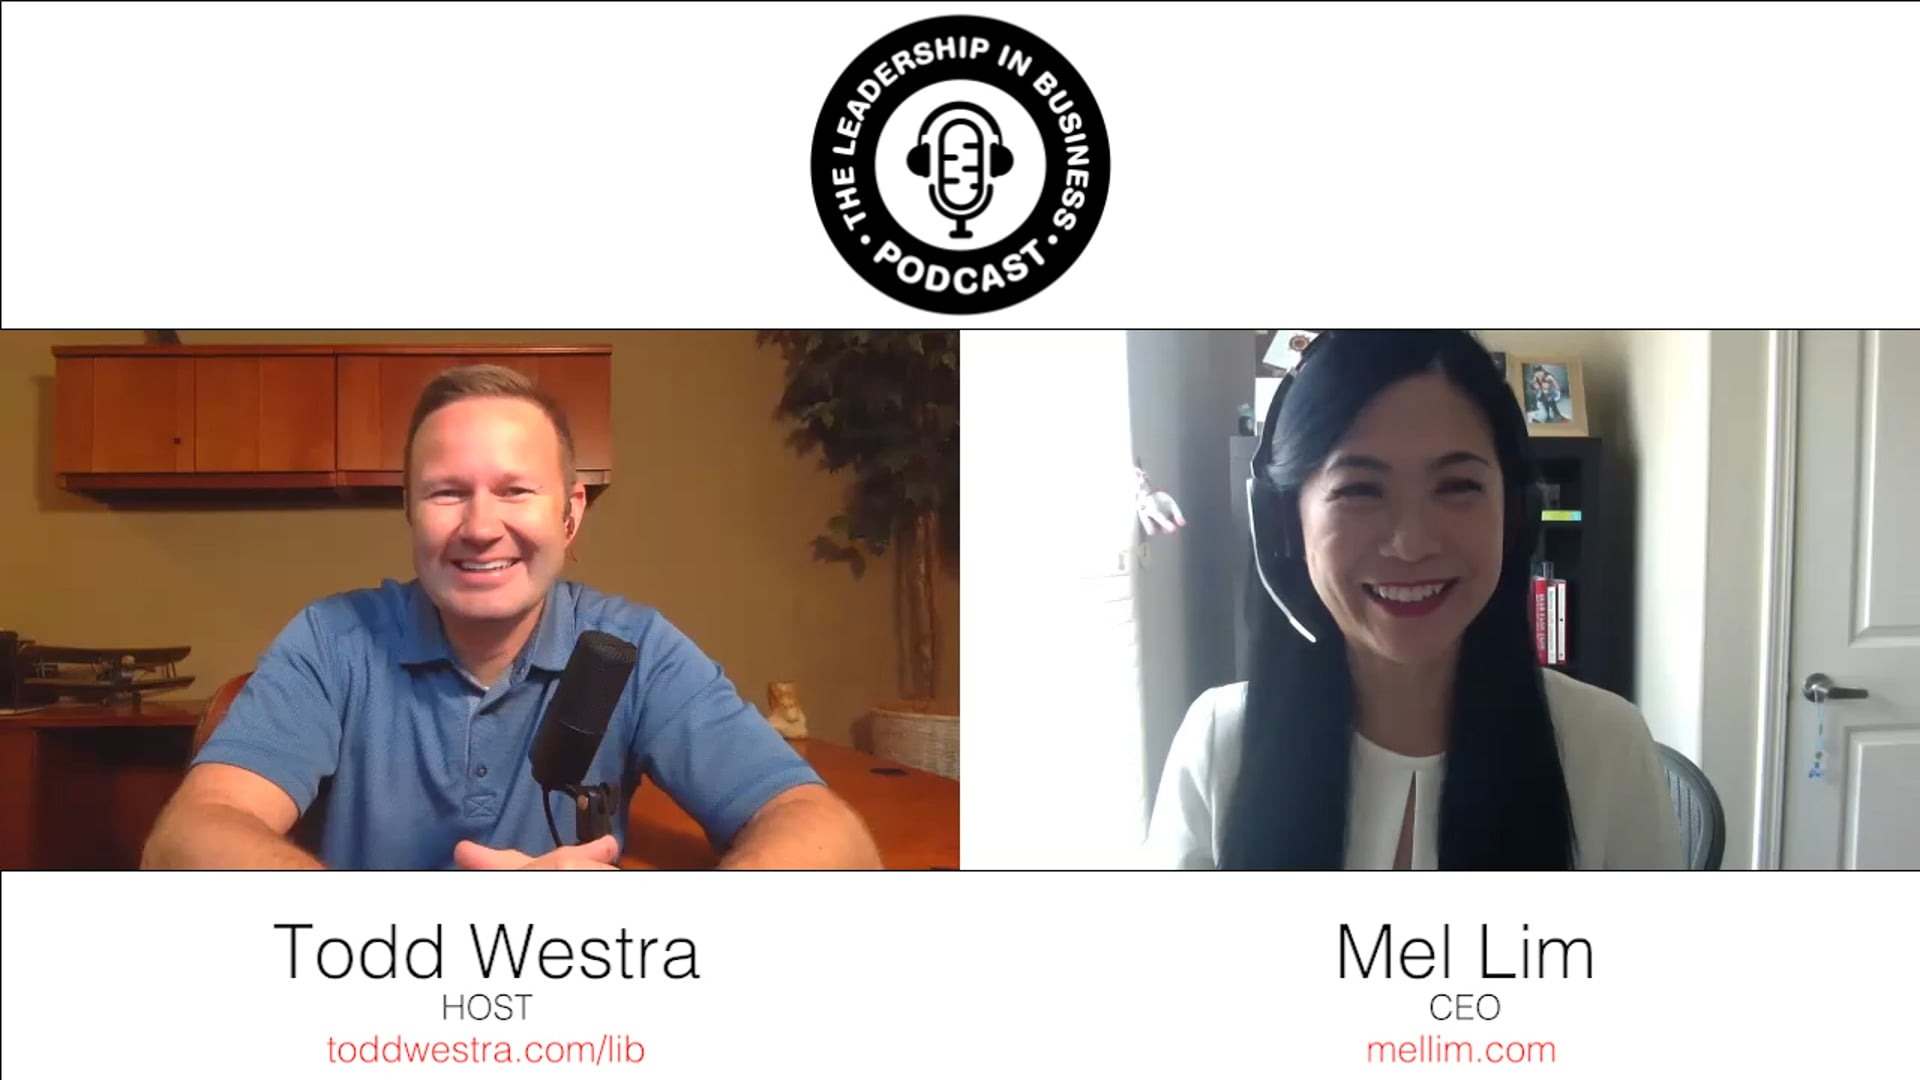 The Leadership in Business Podcast Interview with Mel Lim